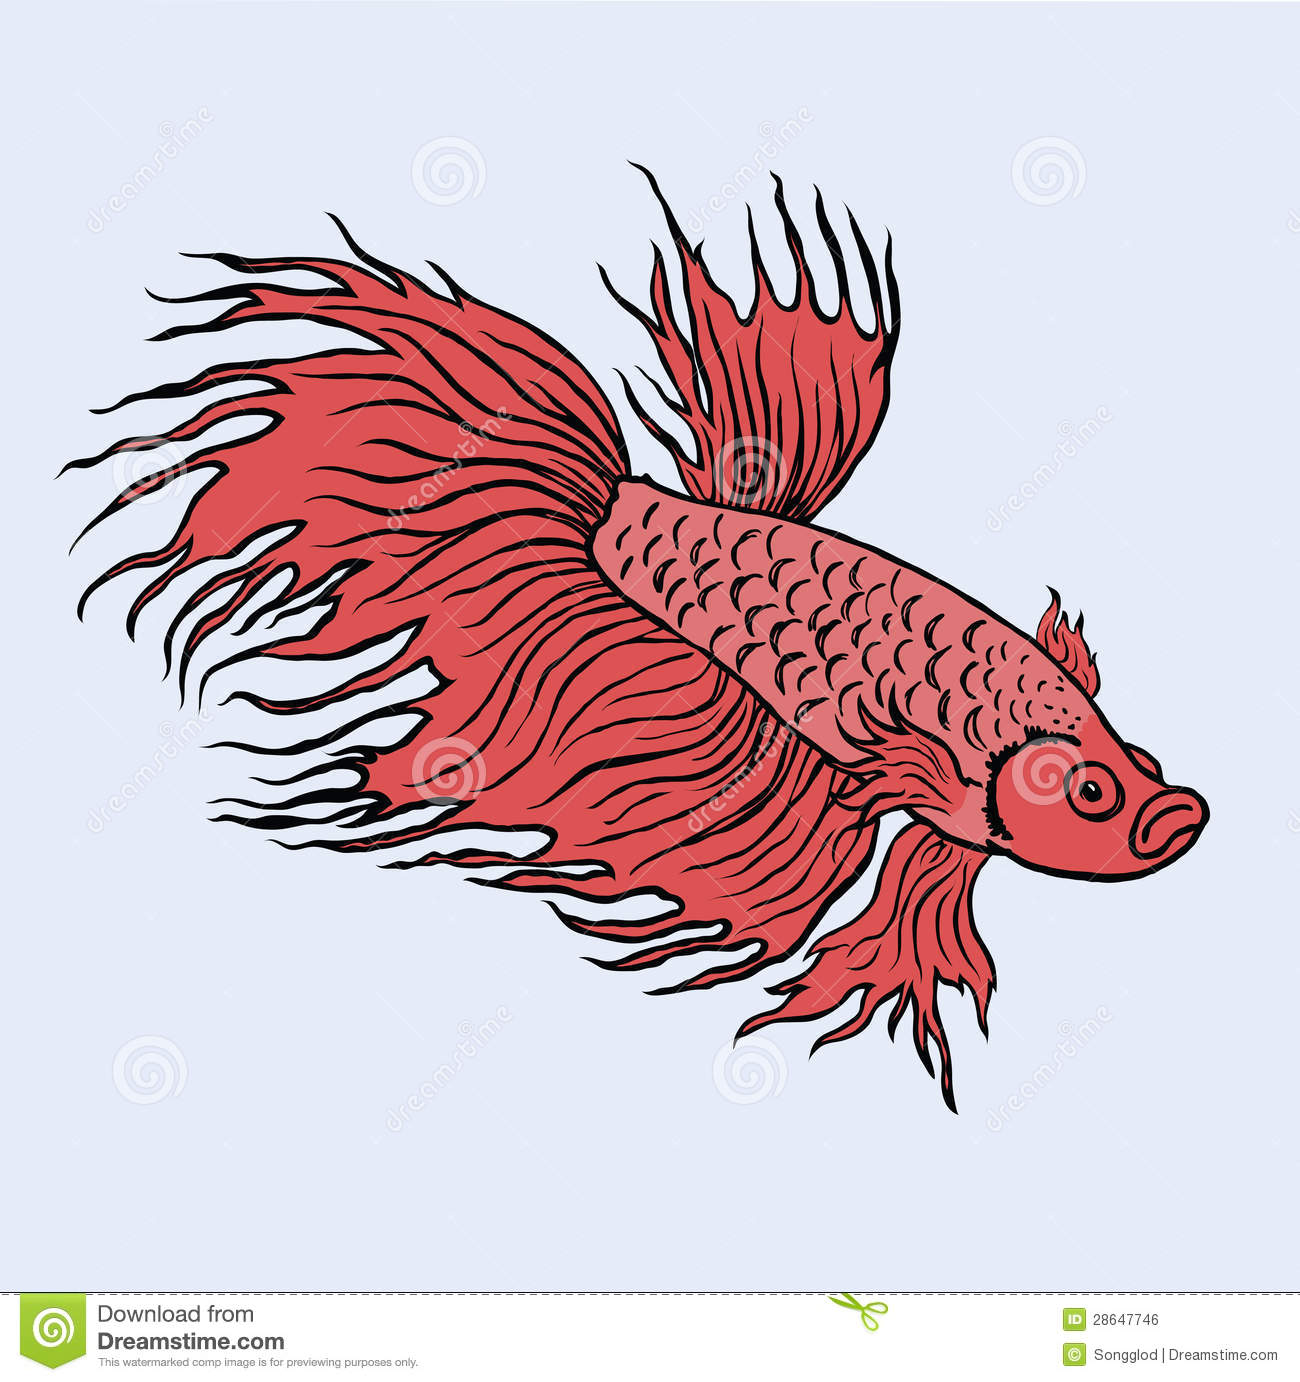 Blue Fish Red Fins Isolated Stock Image - Image of bright, malawi ...